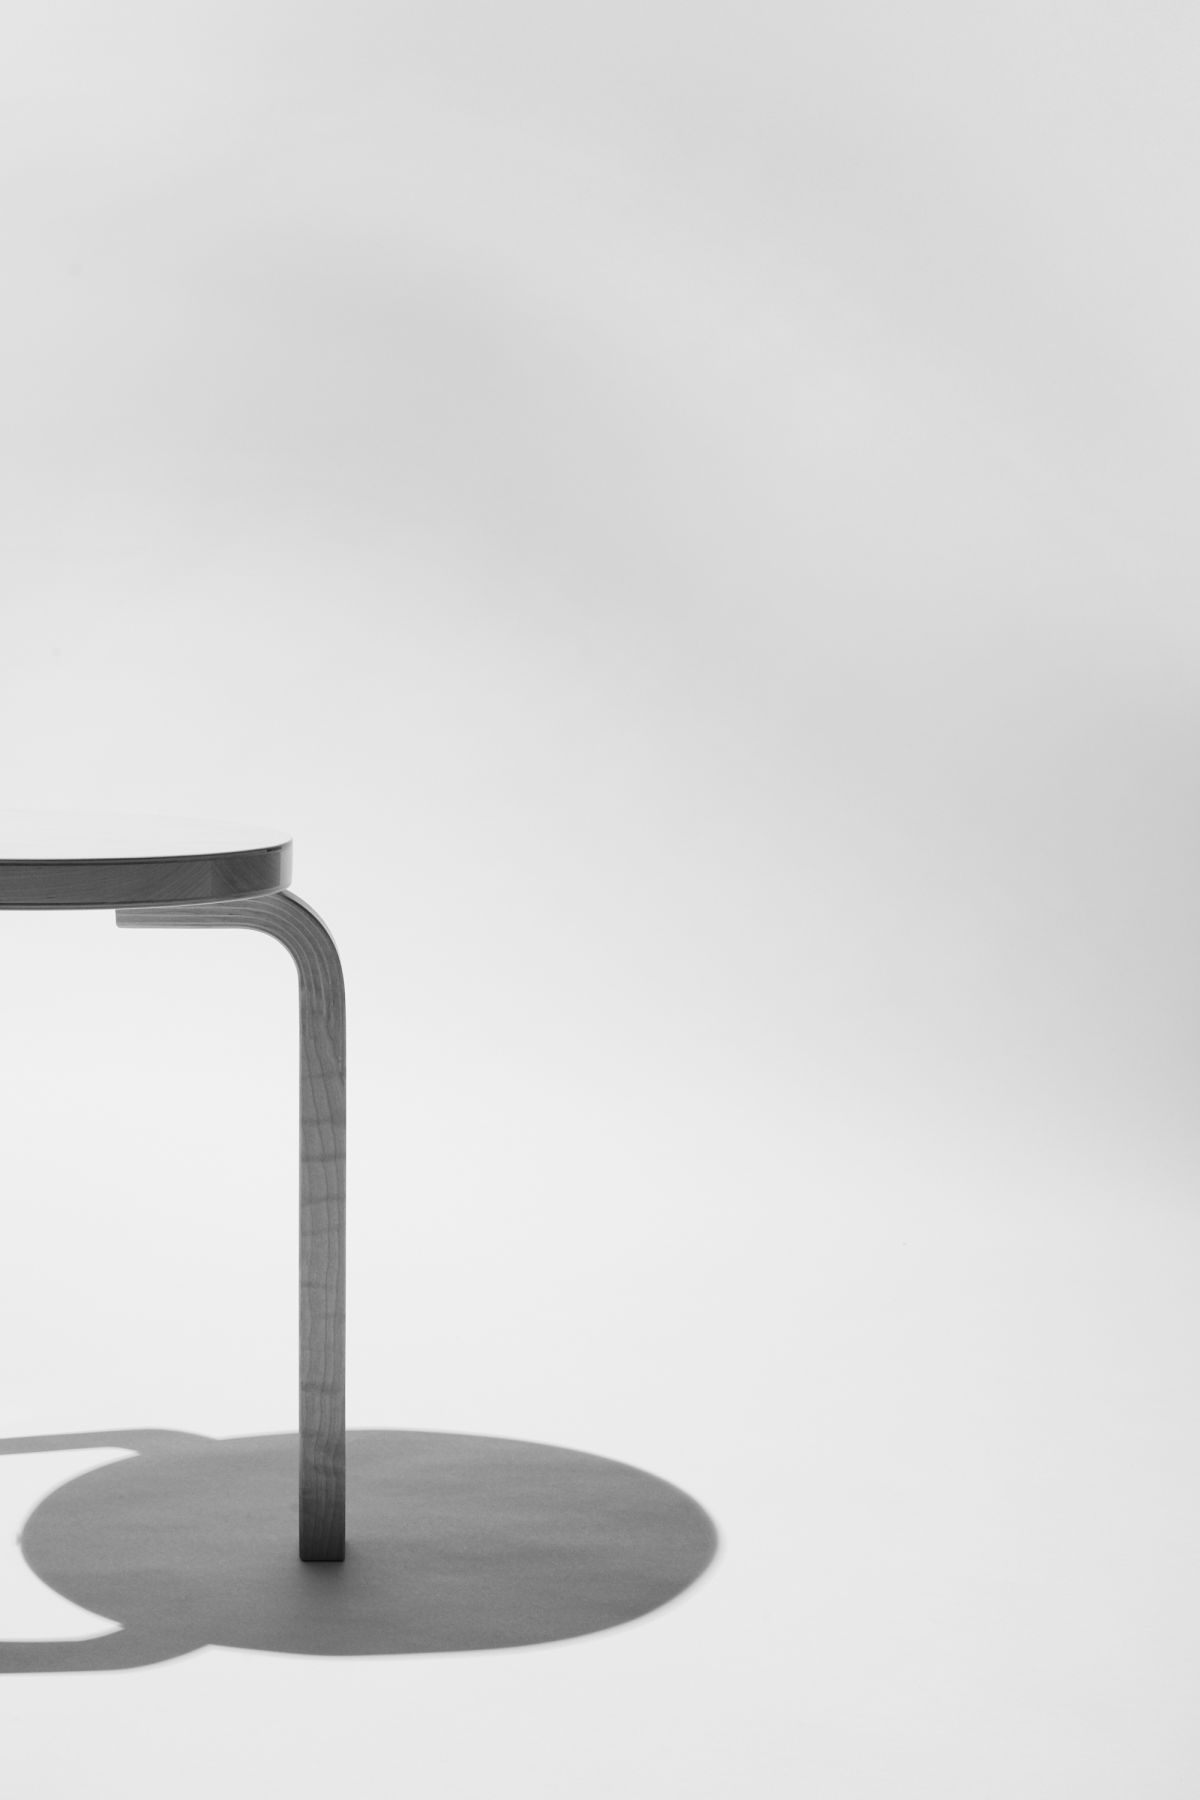 Artek-Stool60-Shadow-Wearefellows-Maximilian-Bartsch_Portrait